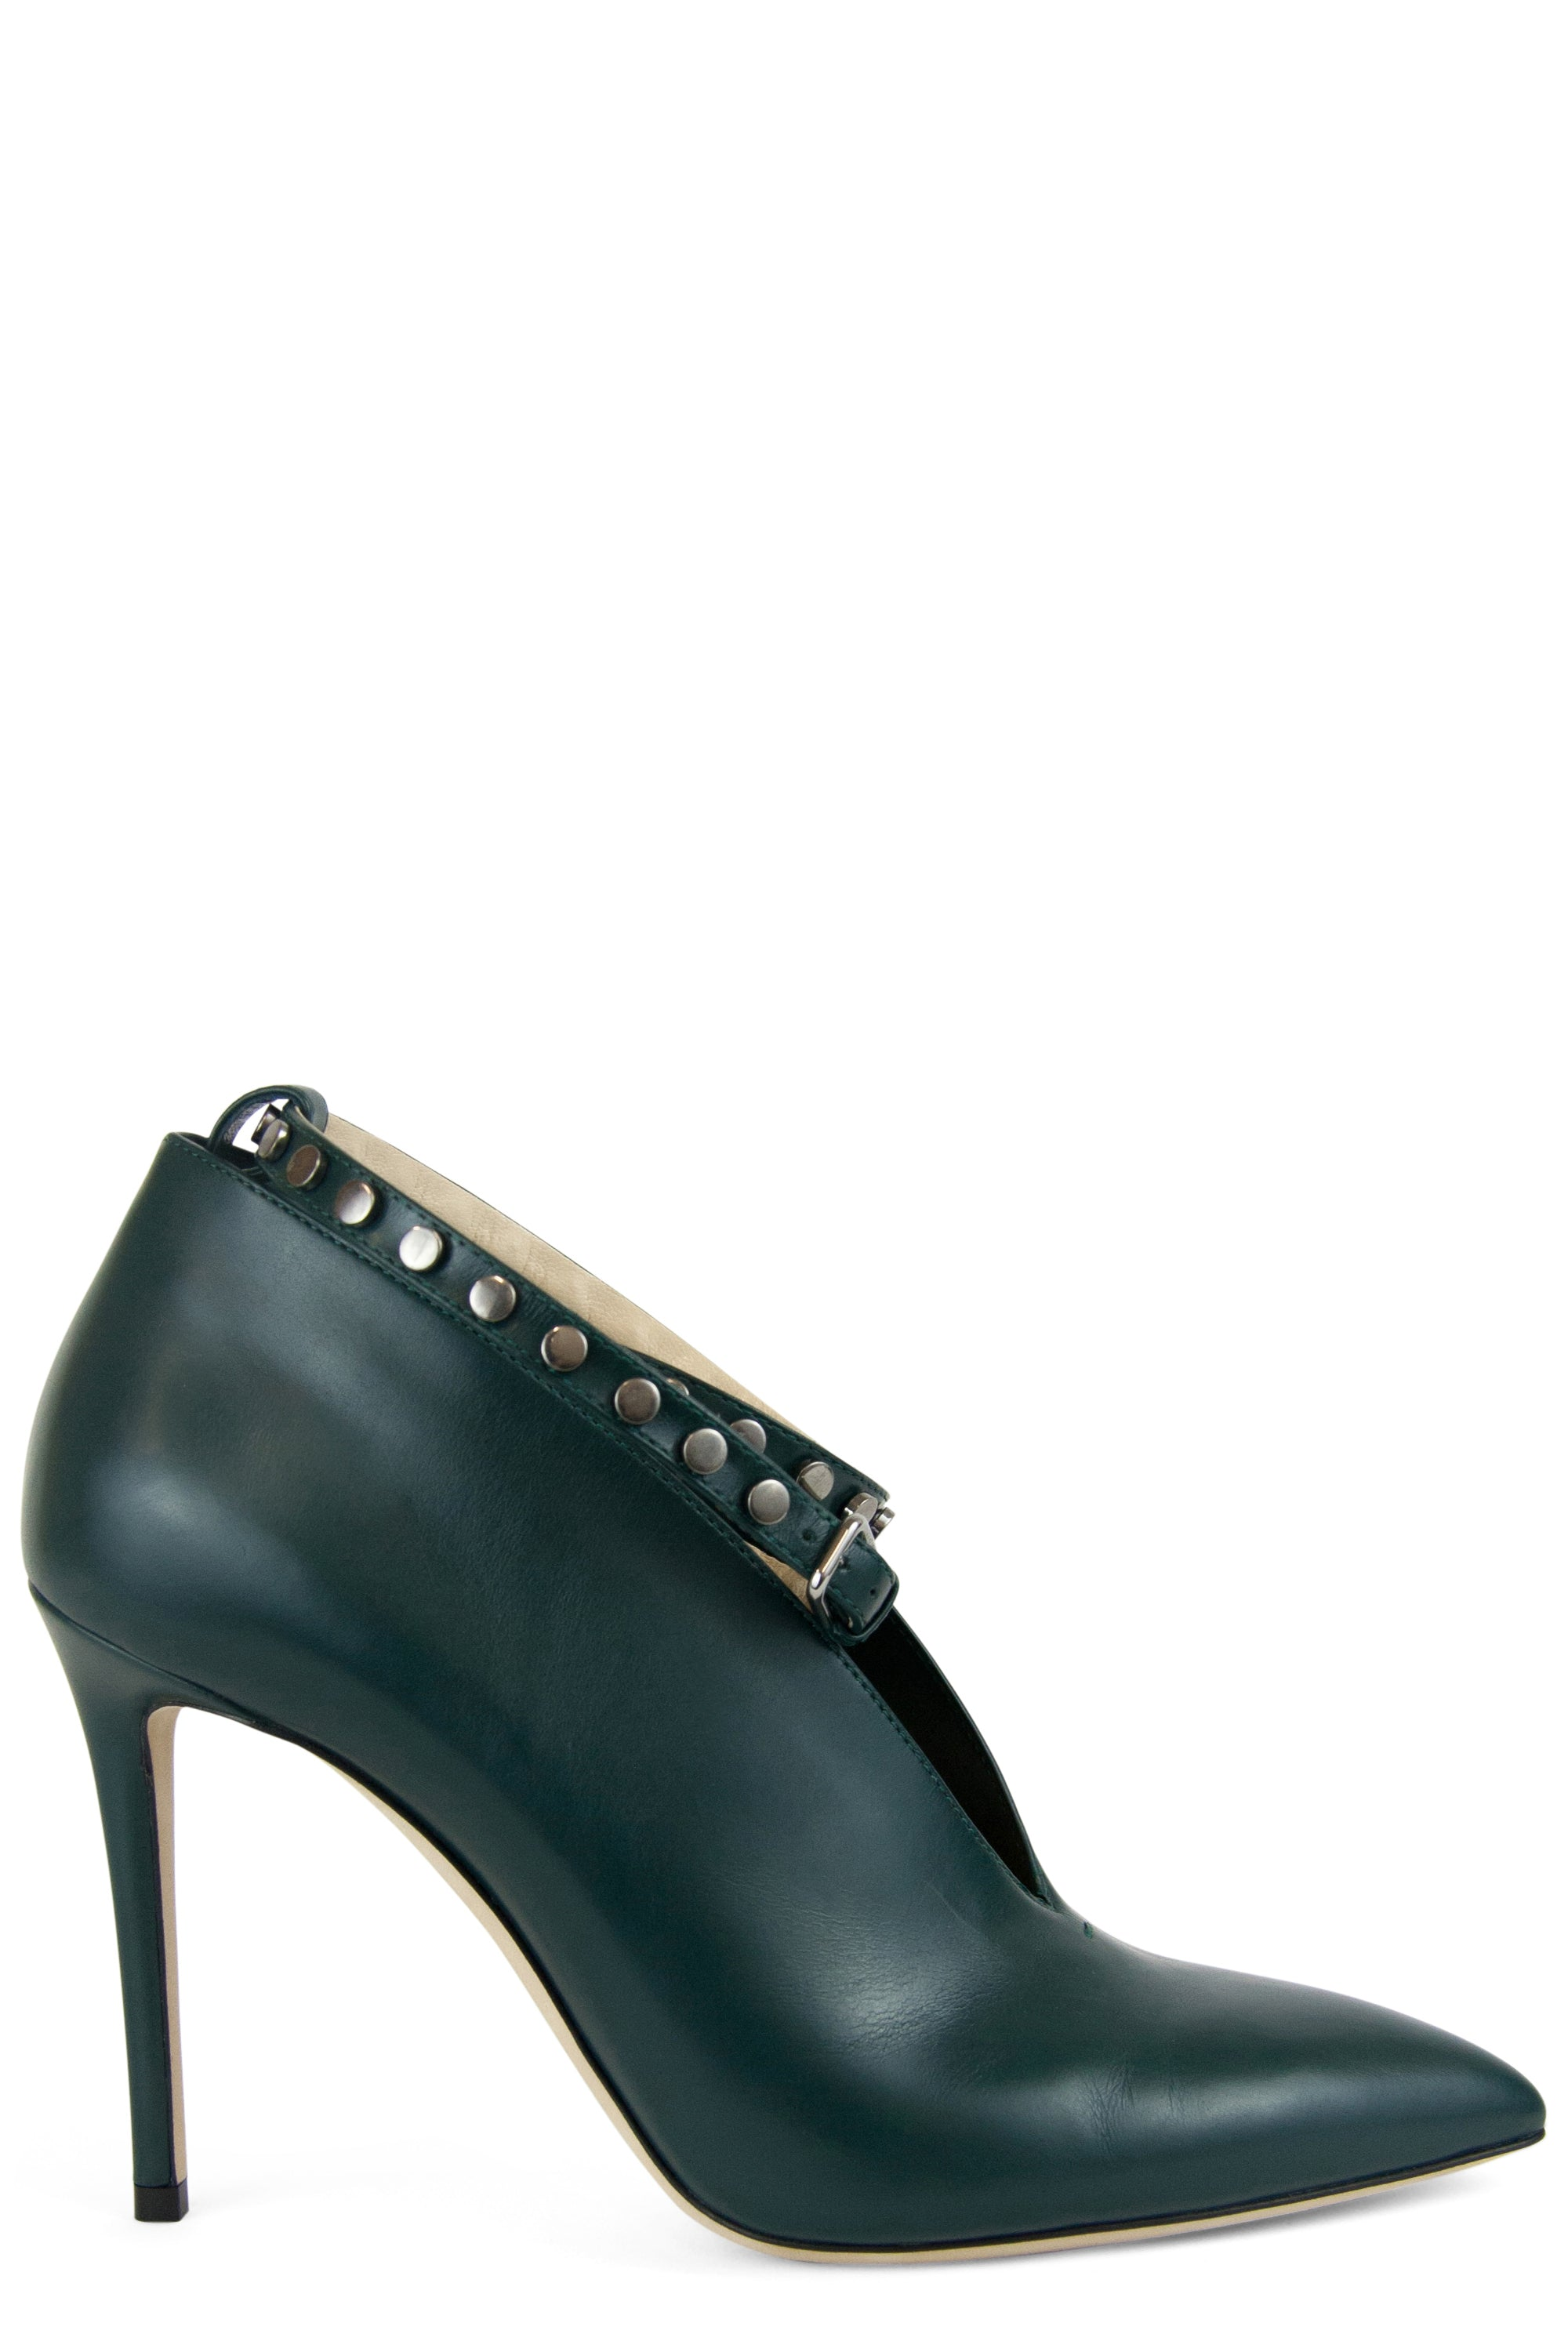 JIMMY CHOO Lark Ankle Strap Booties